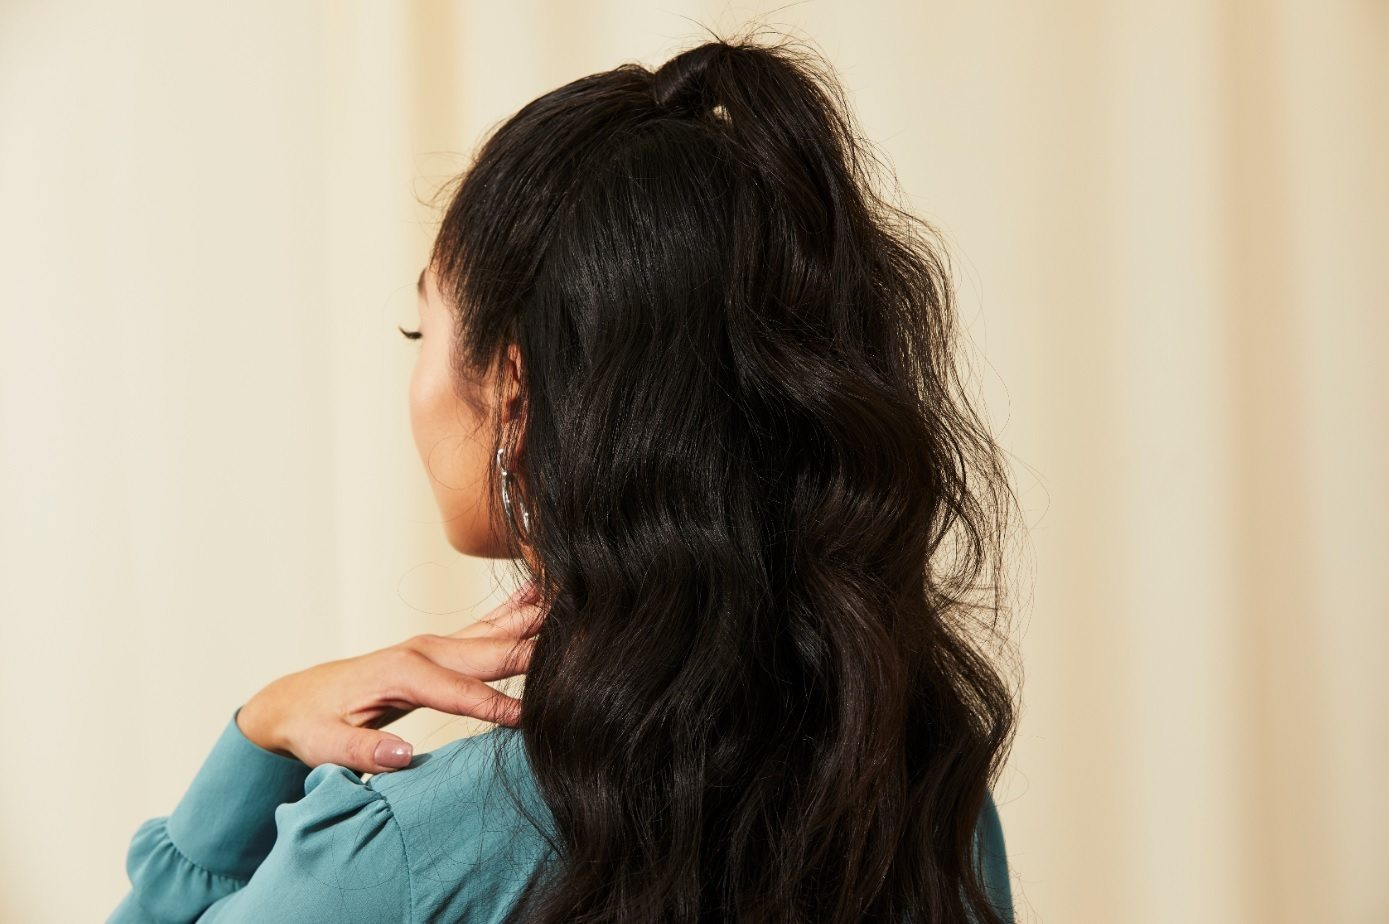 How to Identify and Stop Hair Loss from Stress